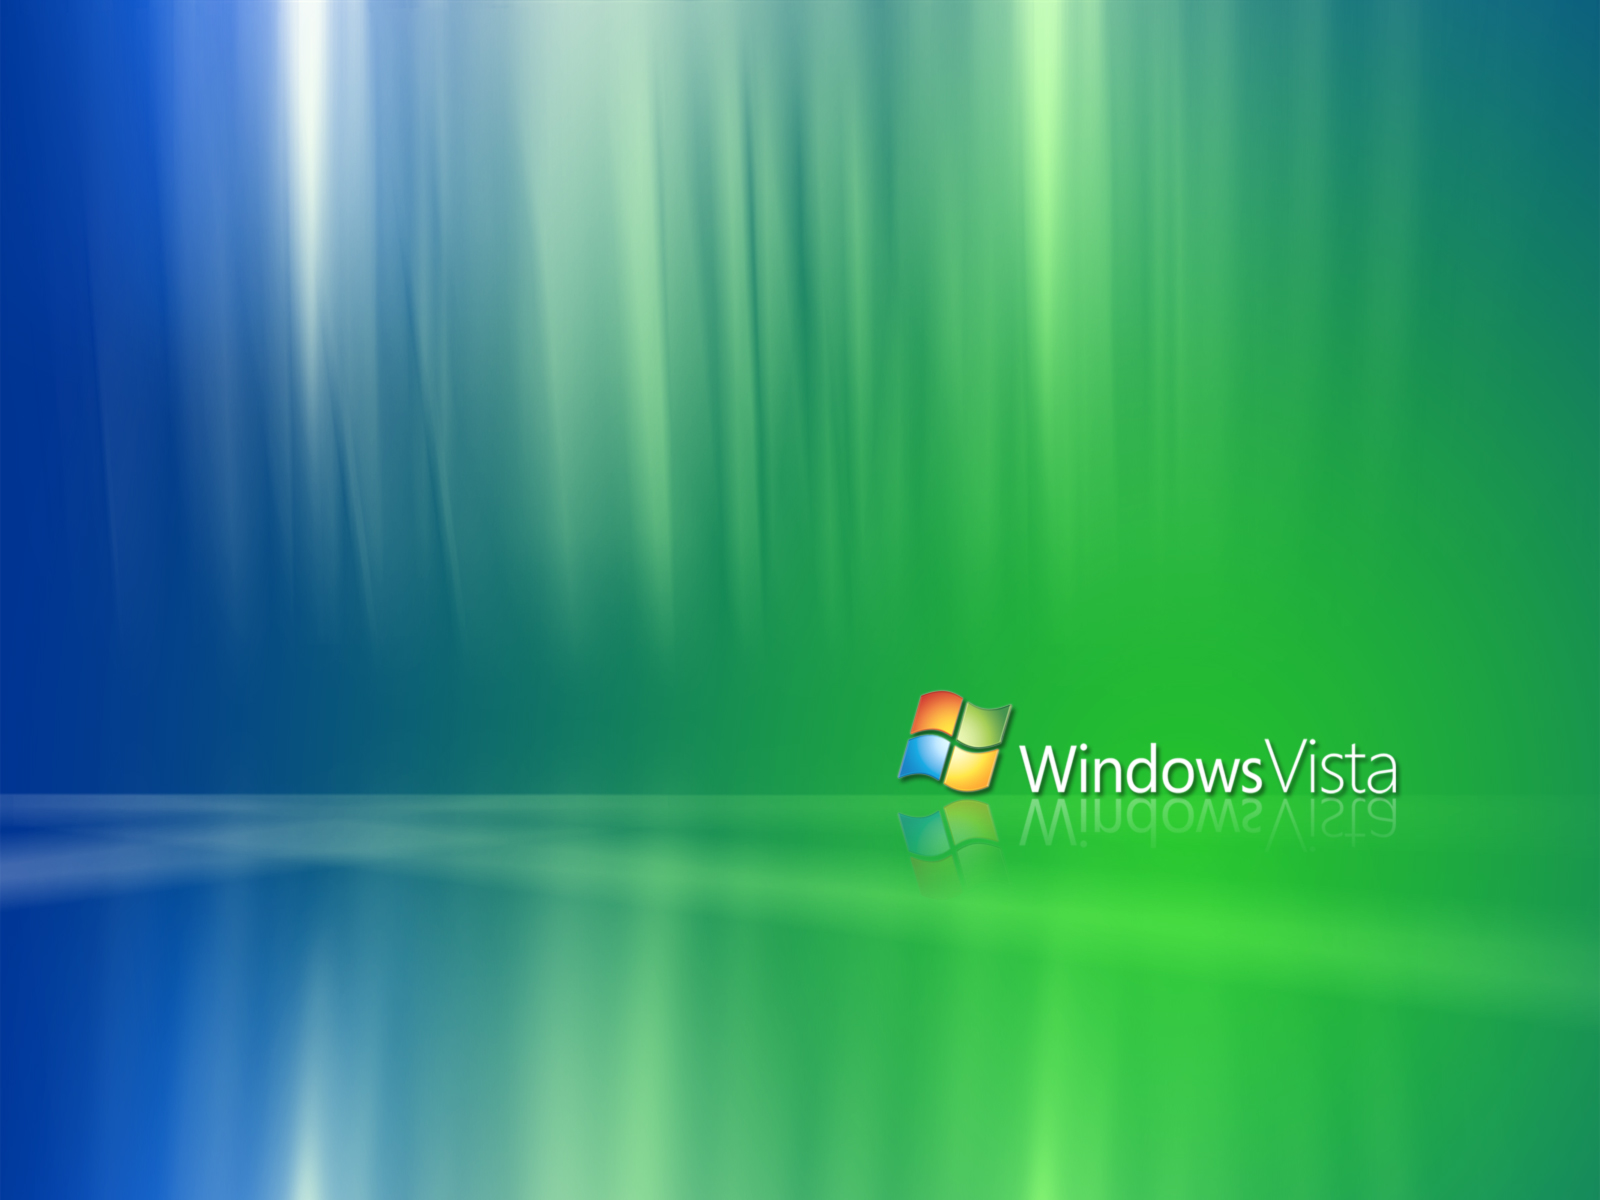 http://2.bp.blogspot.com/-E7hJdgsx5CY/UE9YwQAMrDI/AAAAAAAAAOc/dLp1DPe2qBg/s1600/windows-vista-vivid-blue-green-wallpaper.jpg